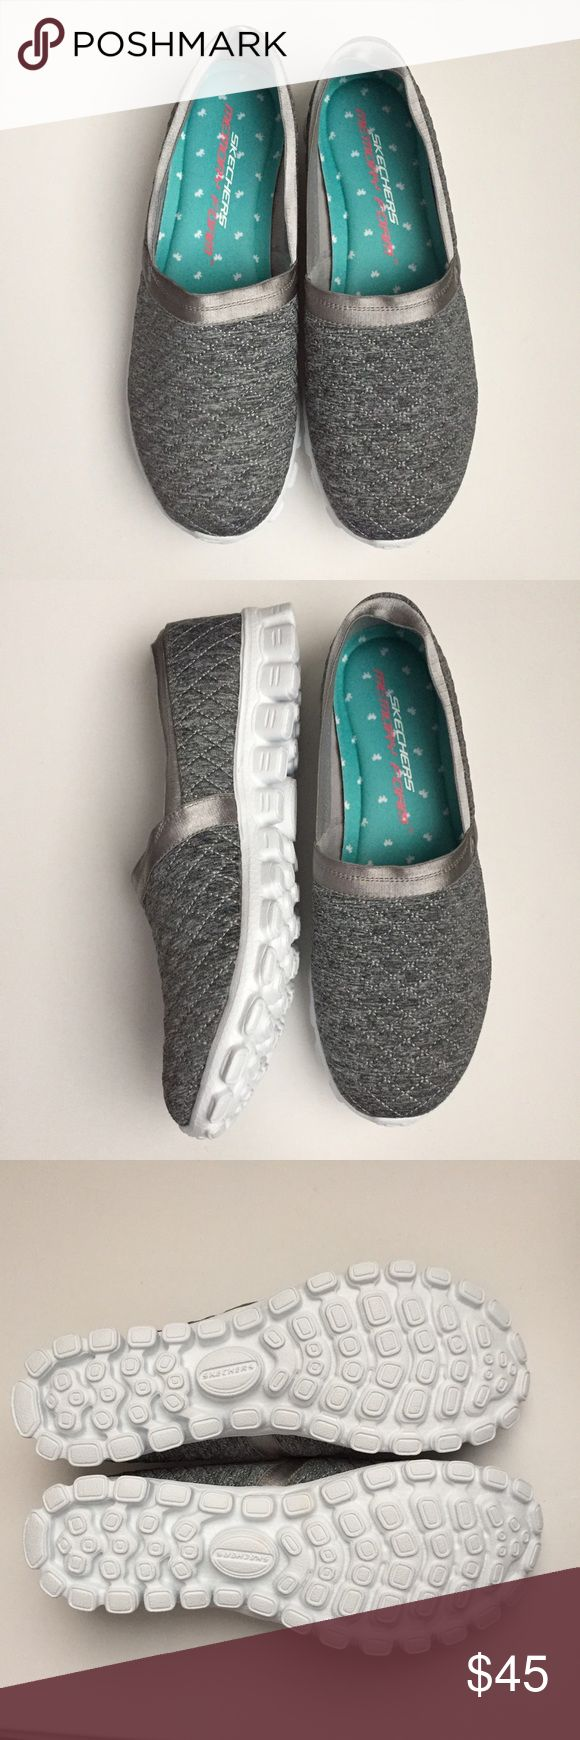 NEW IN BOX Skechers flex Memory Foam NEW IN BOX Gray Quilted Slide-On Skechers Flex Memory Foam Shoes Size: 8 Bundle & Save! 🛍 Skechers Shoes Flats & Loafers